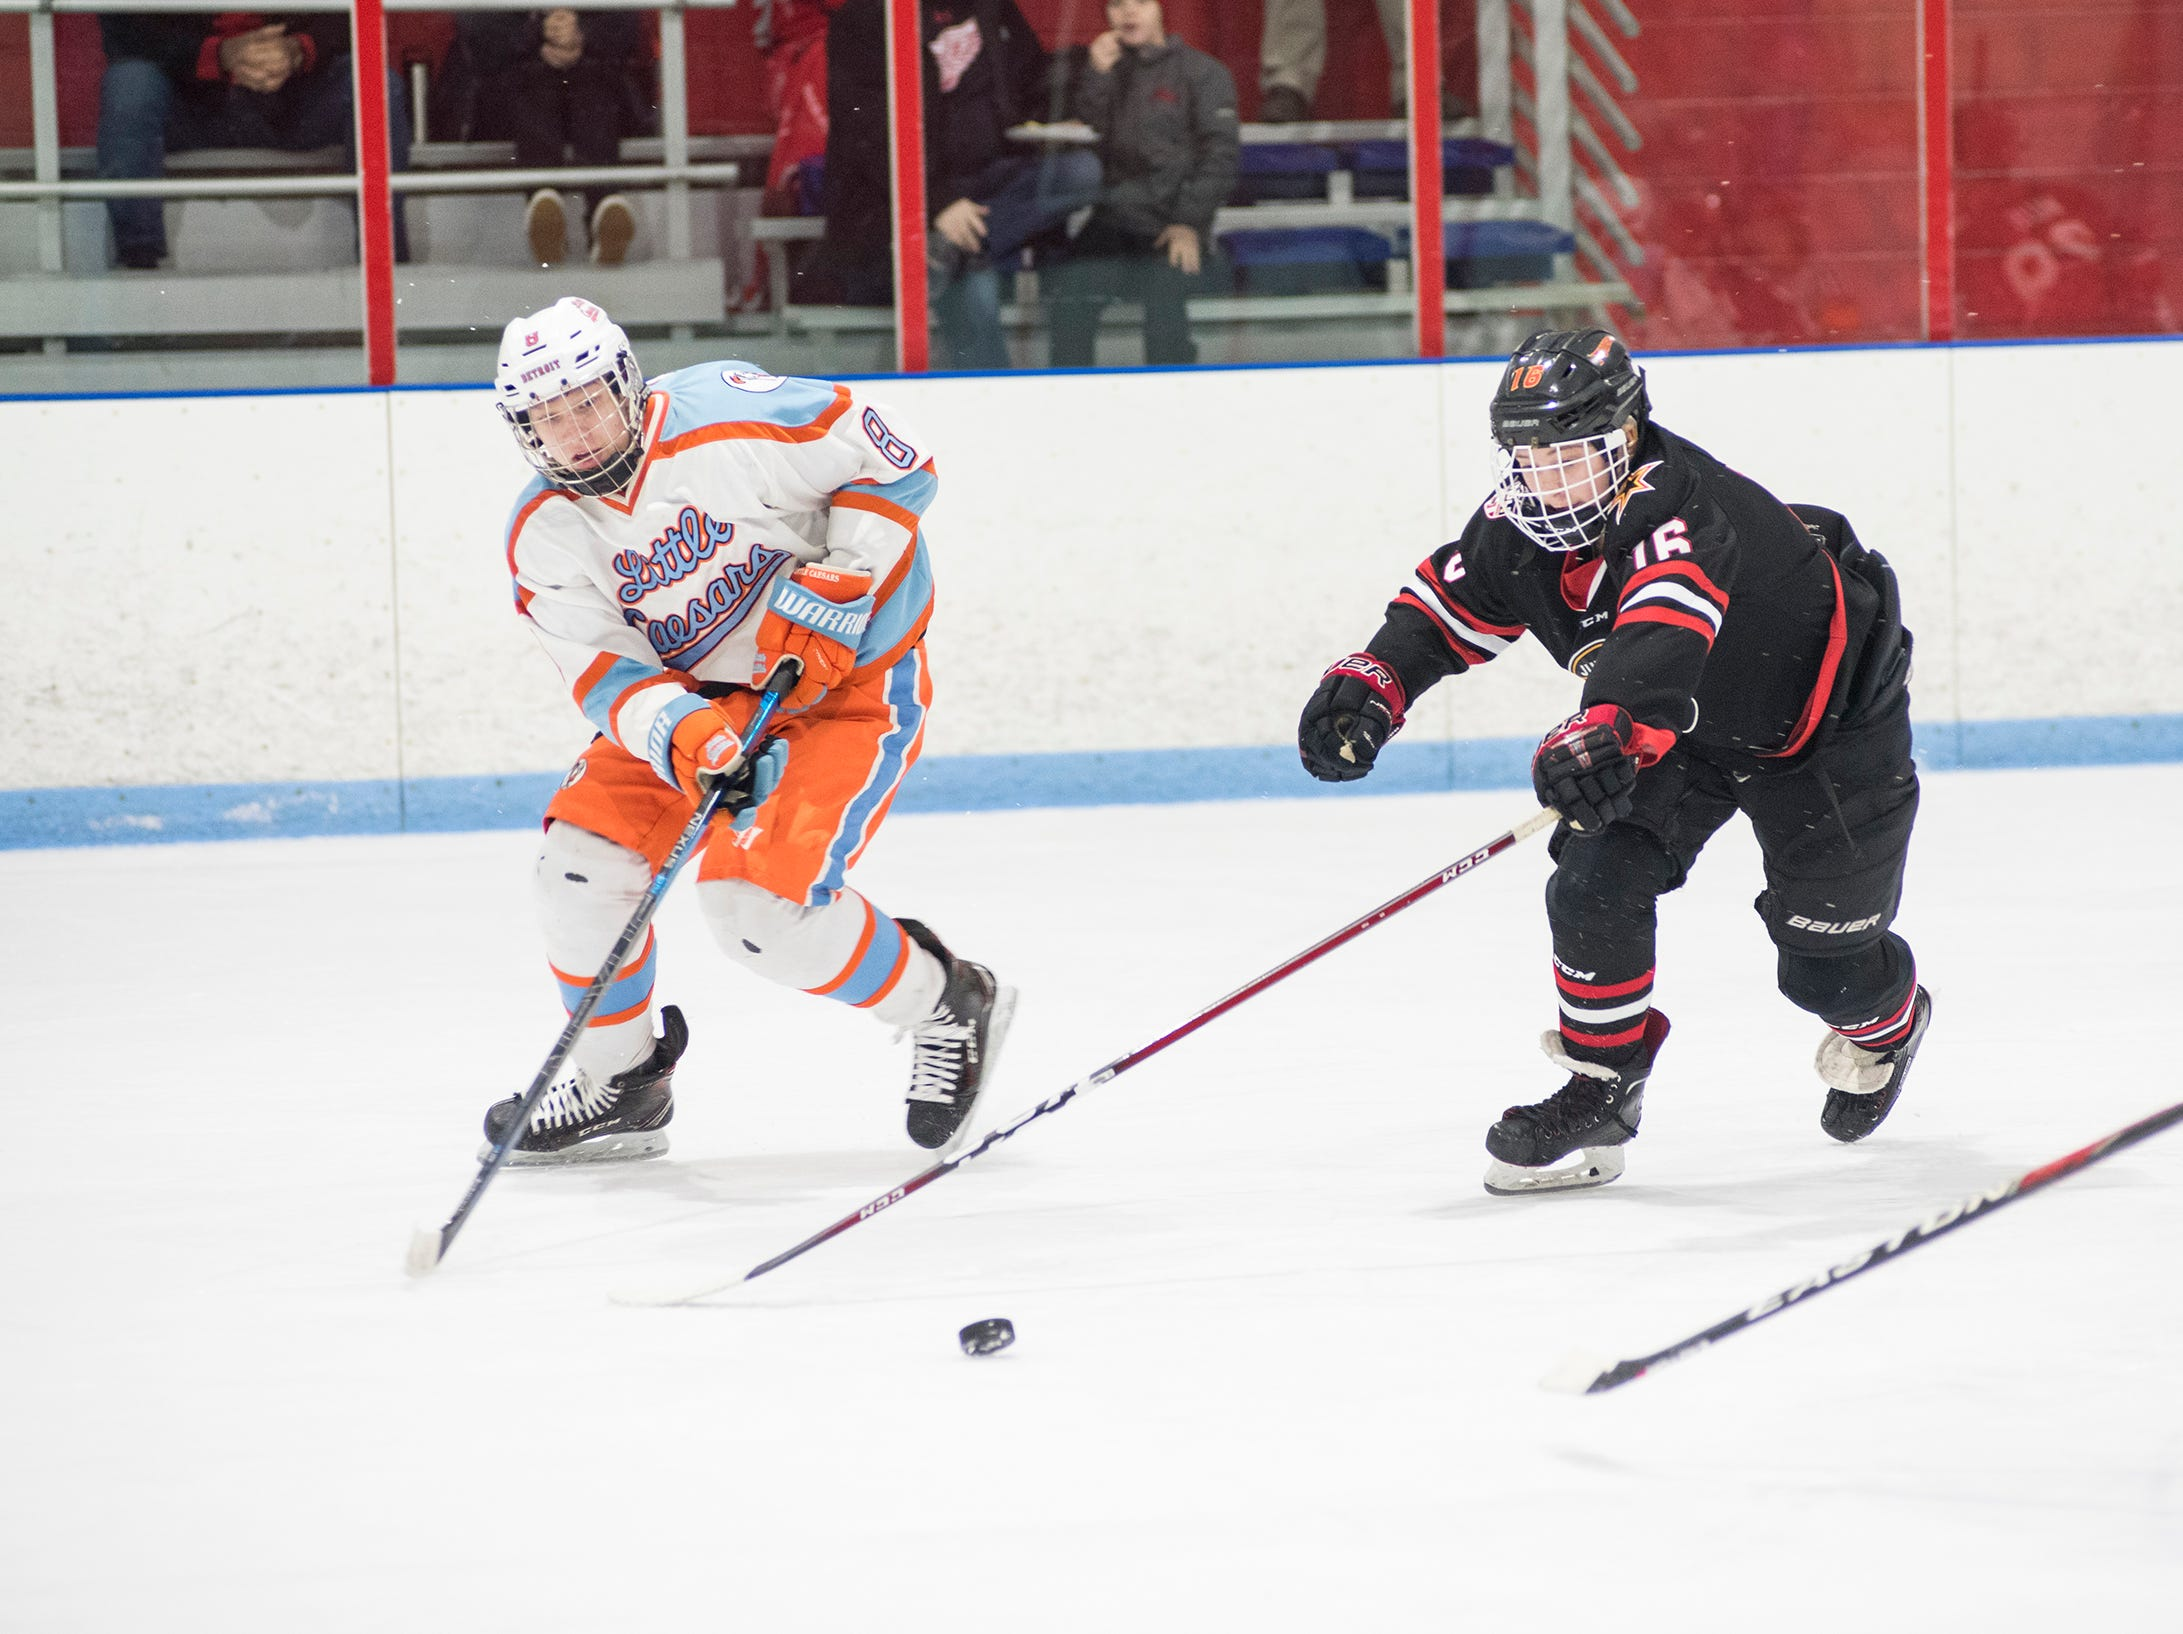 Indianapolis Jr Fuel defenseman Graham Wood (16) and Detroit Little Caesars forward Justin Varner chase the puck during their BAAA-A Silver Stick Finals match Friday, Jan. 4, 2019 at Glacier Pointe Ice Complex.